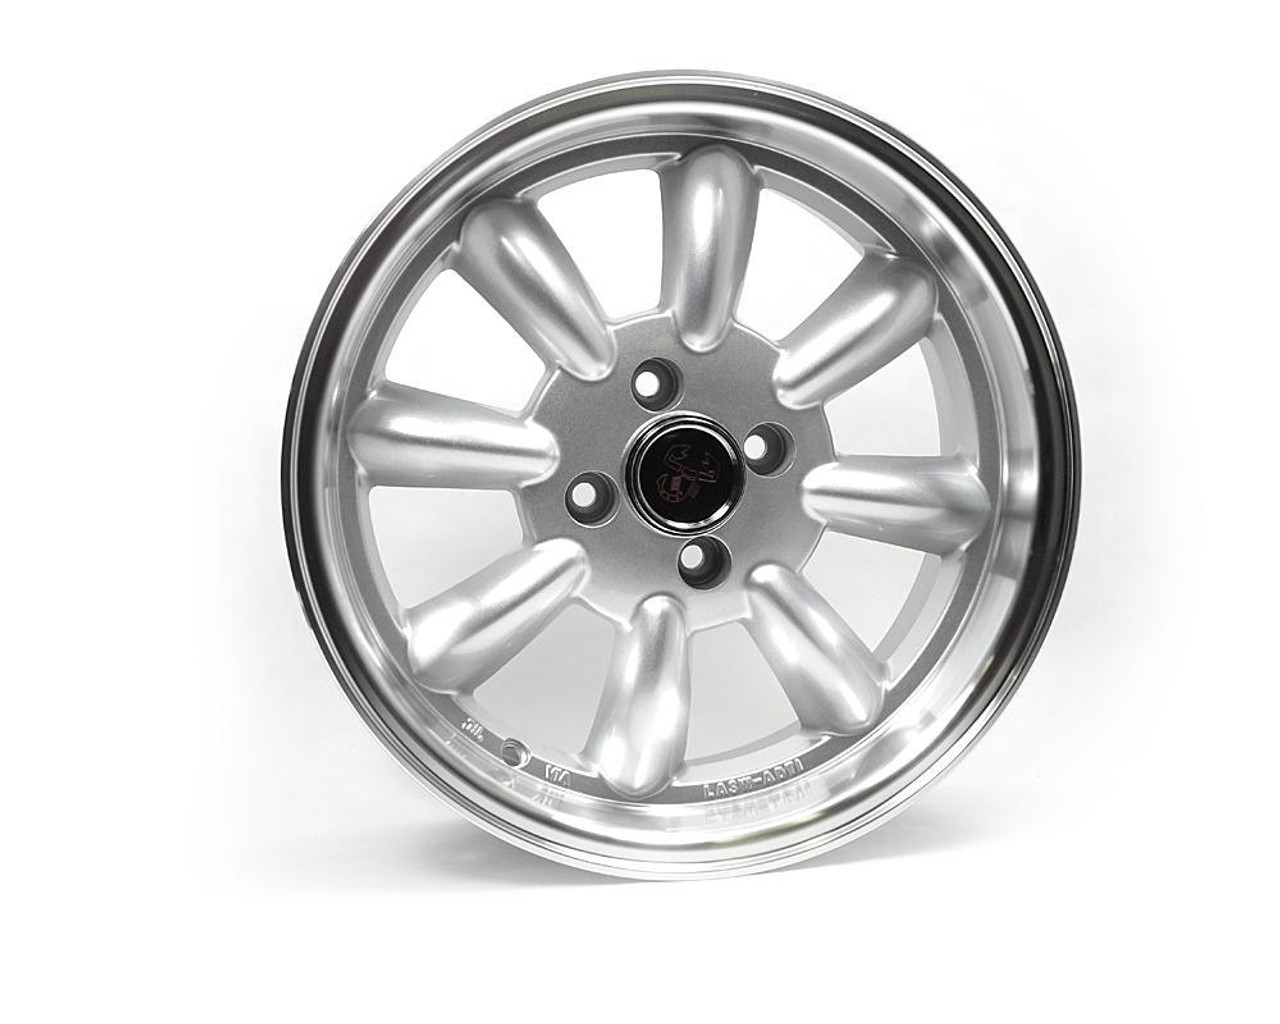 """Monza wheels 15"""" x 6.5"""", 15mm offset in silver - Auto Ricambi Silver"""